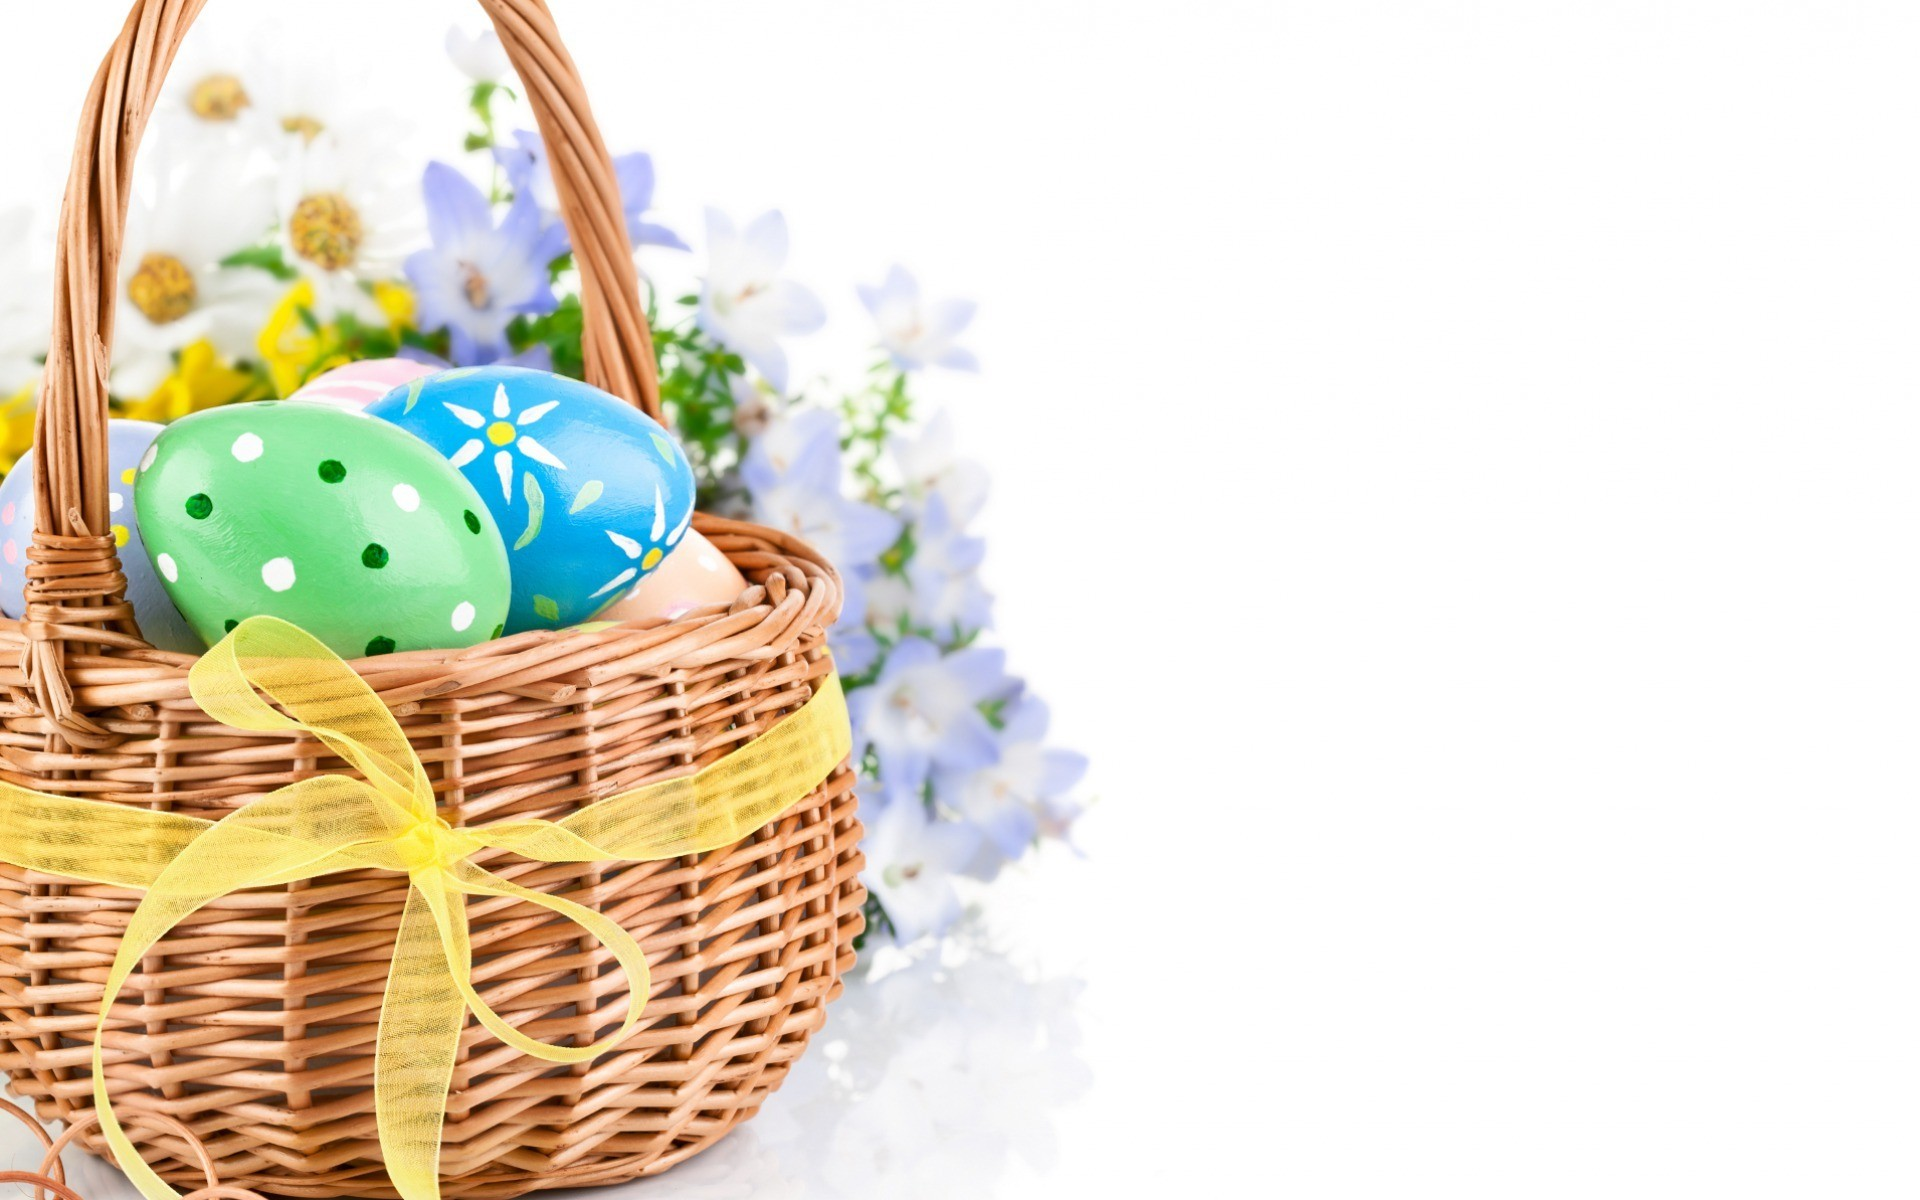 Easter Wallpaper 21   1920 X 1200 stmednet 1920x1200